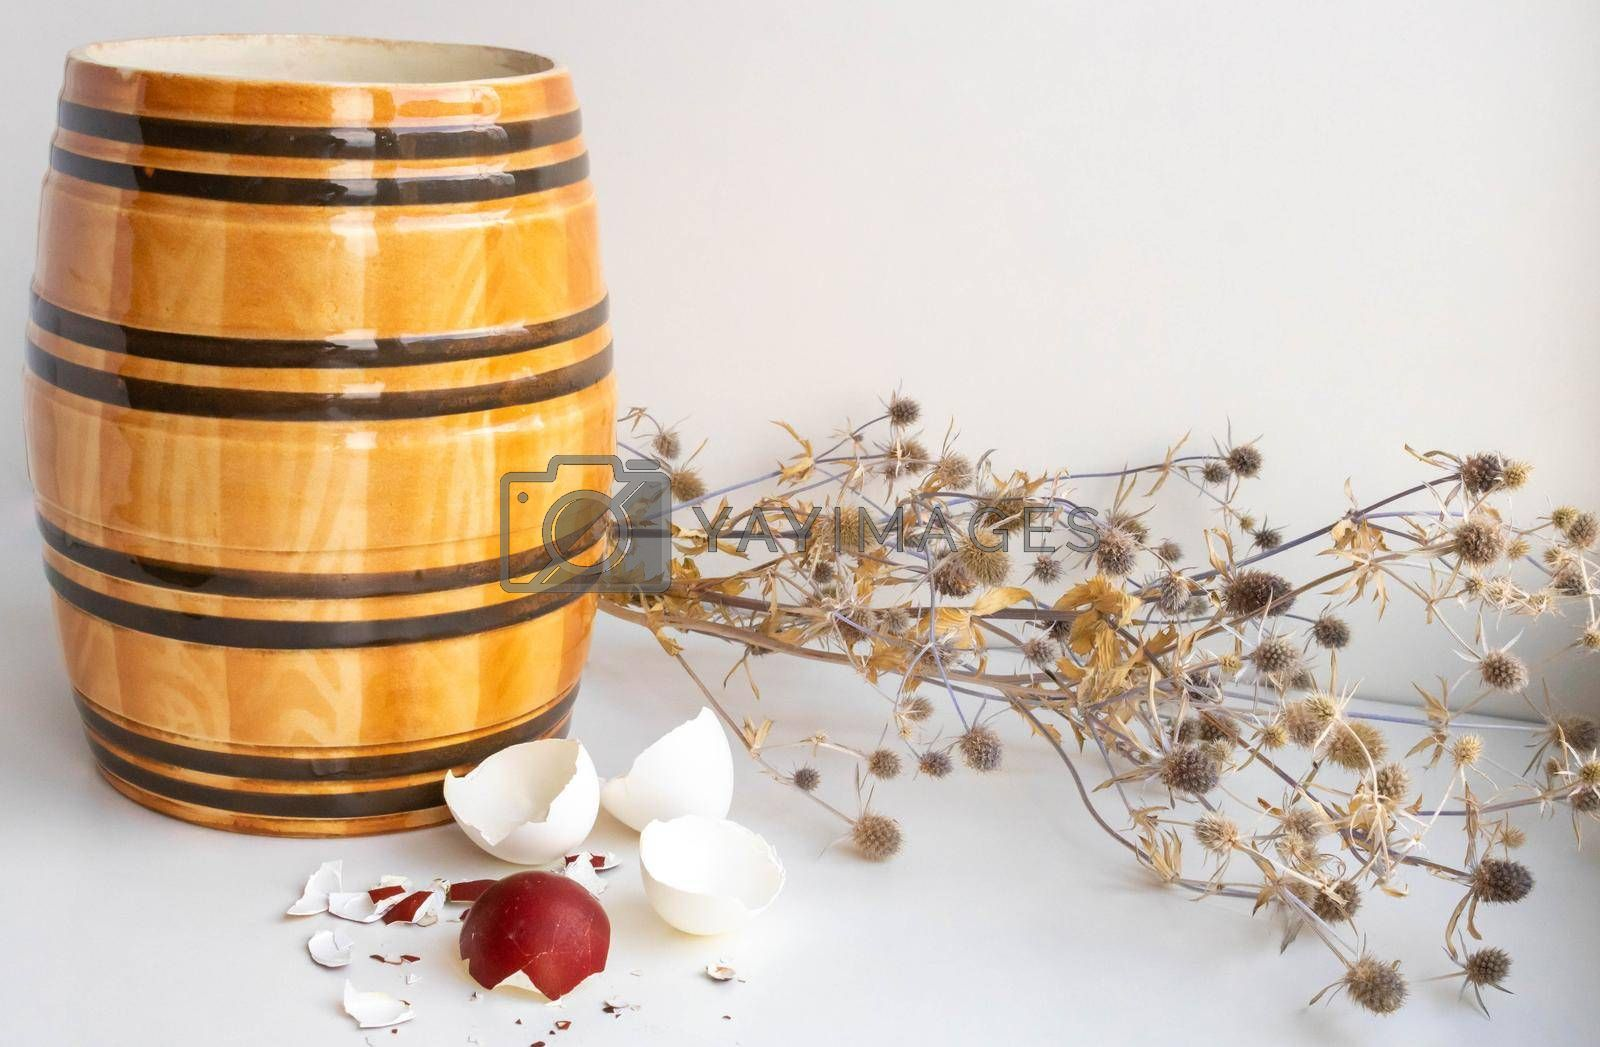 Easter. Still life with eggshells, clay barrel and dried flowers on a white background.